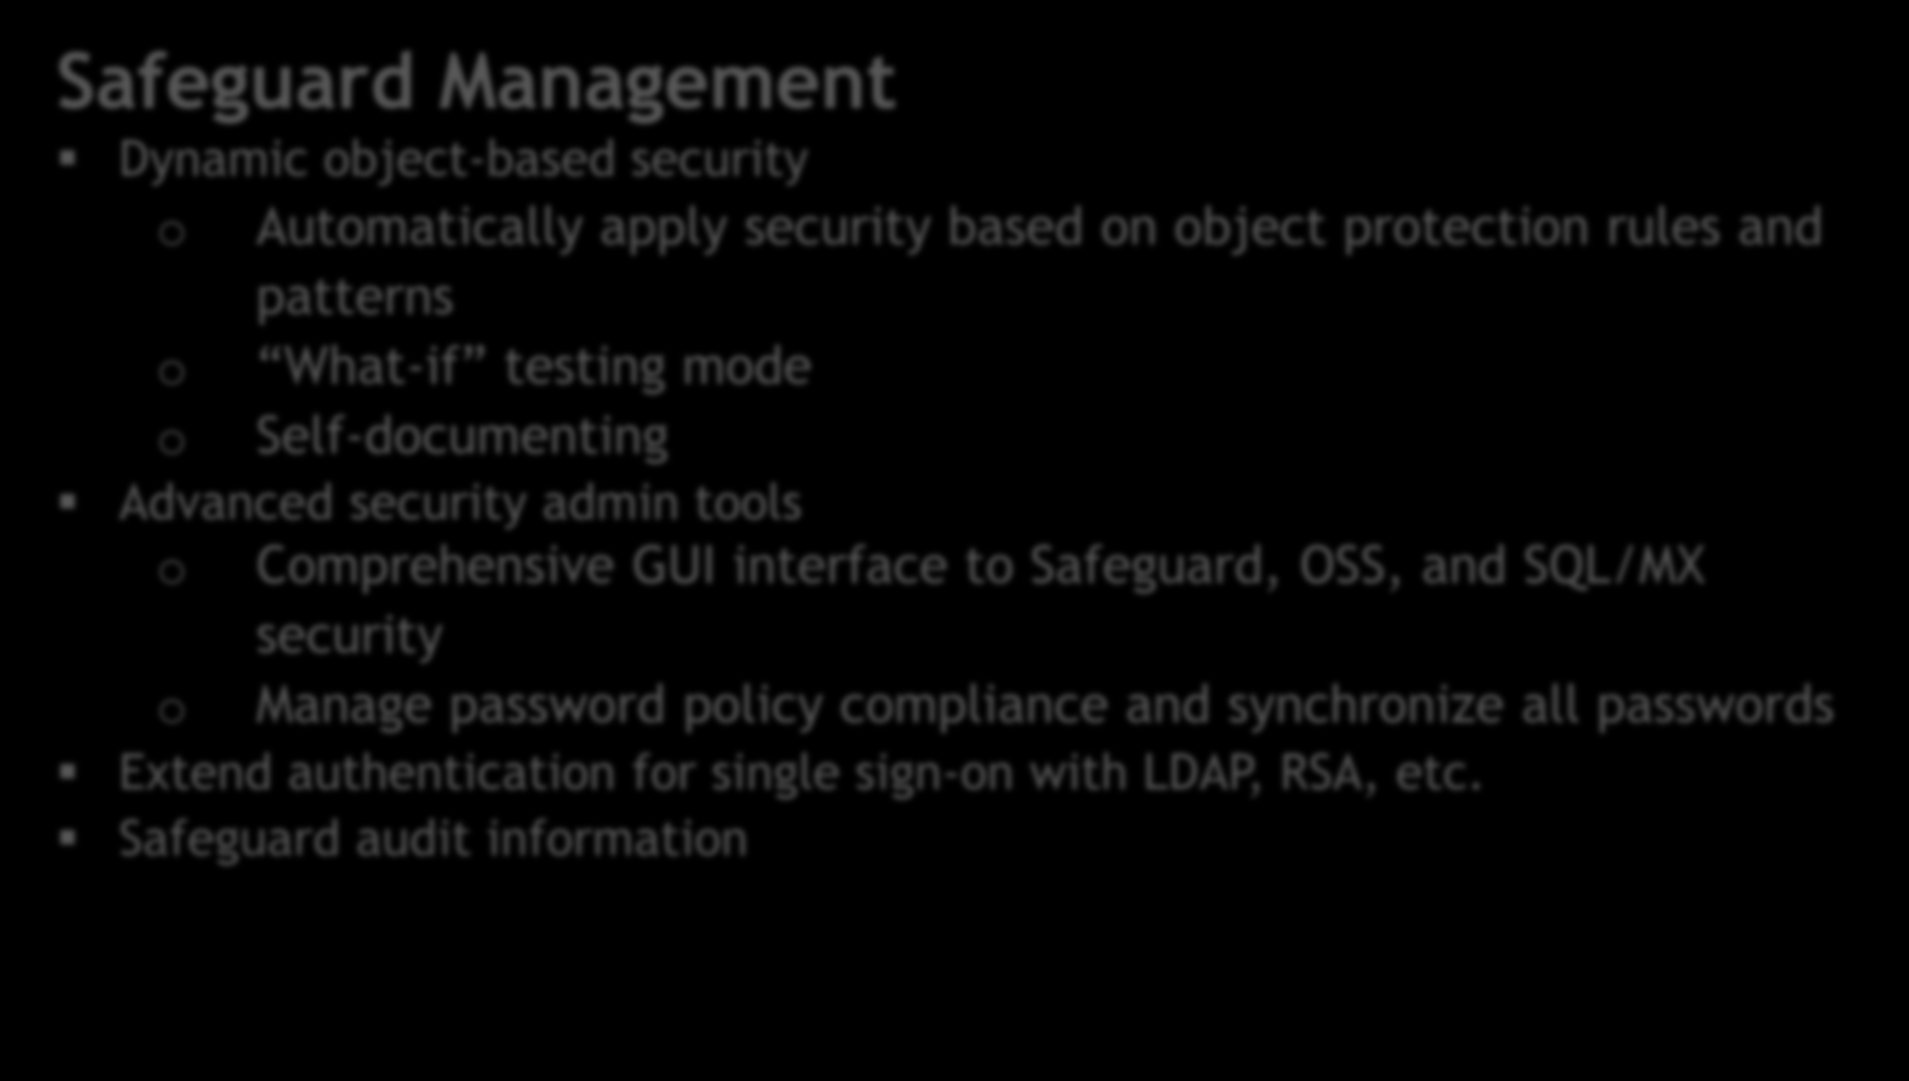 Safeguard Management Dynamic object-based security o Automatically apply security based on object protection rules and patterns o What-if testing mode o Self-documenting Advanced security admin tools